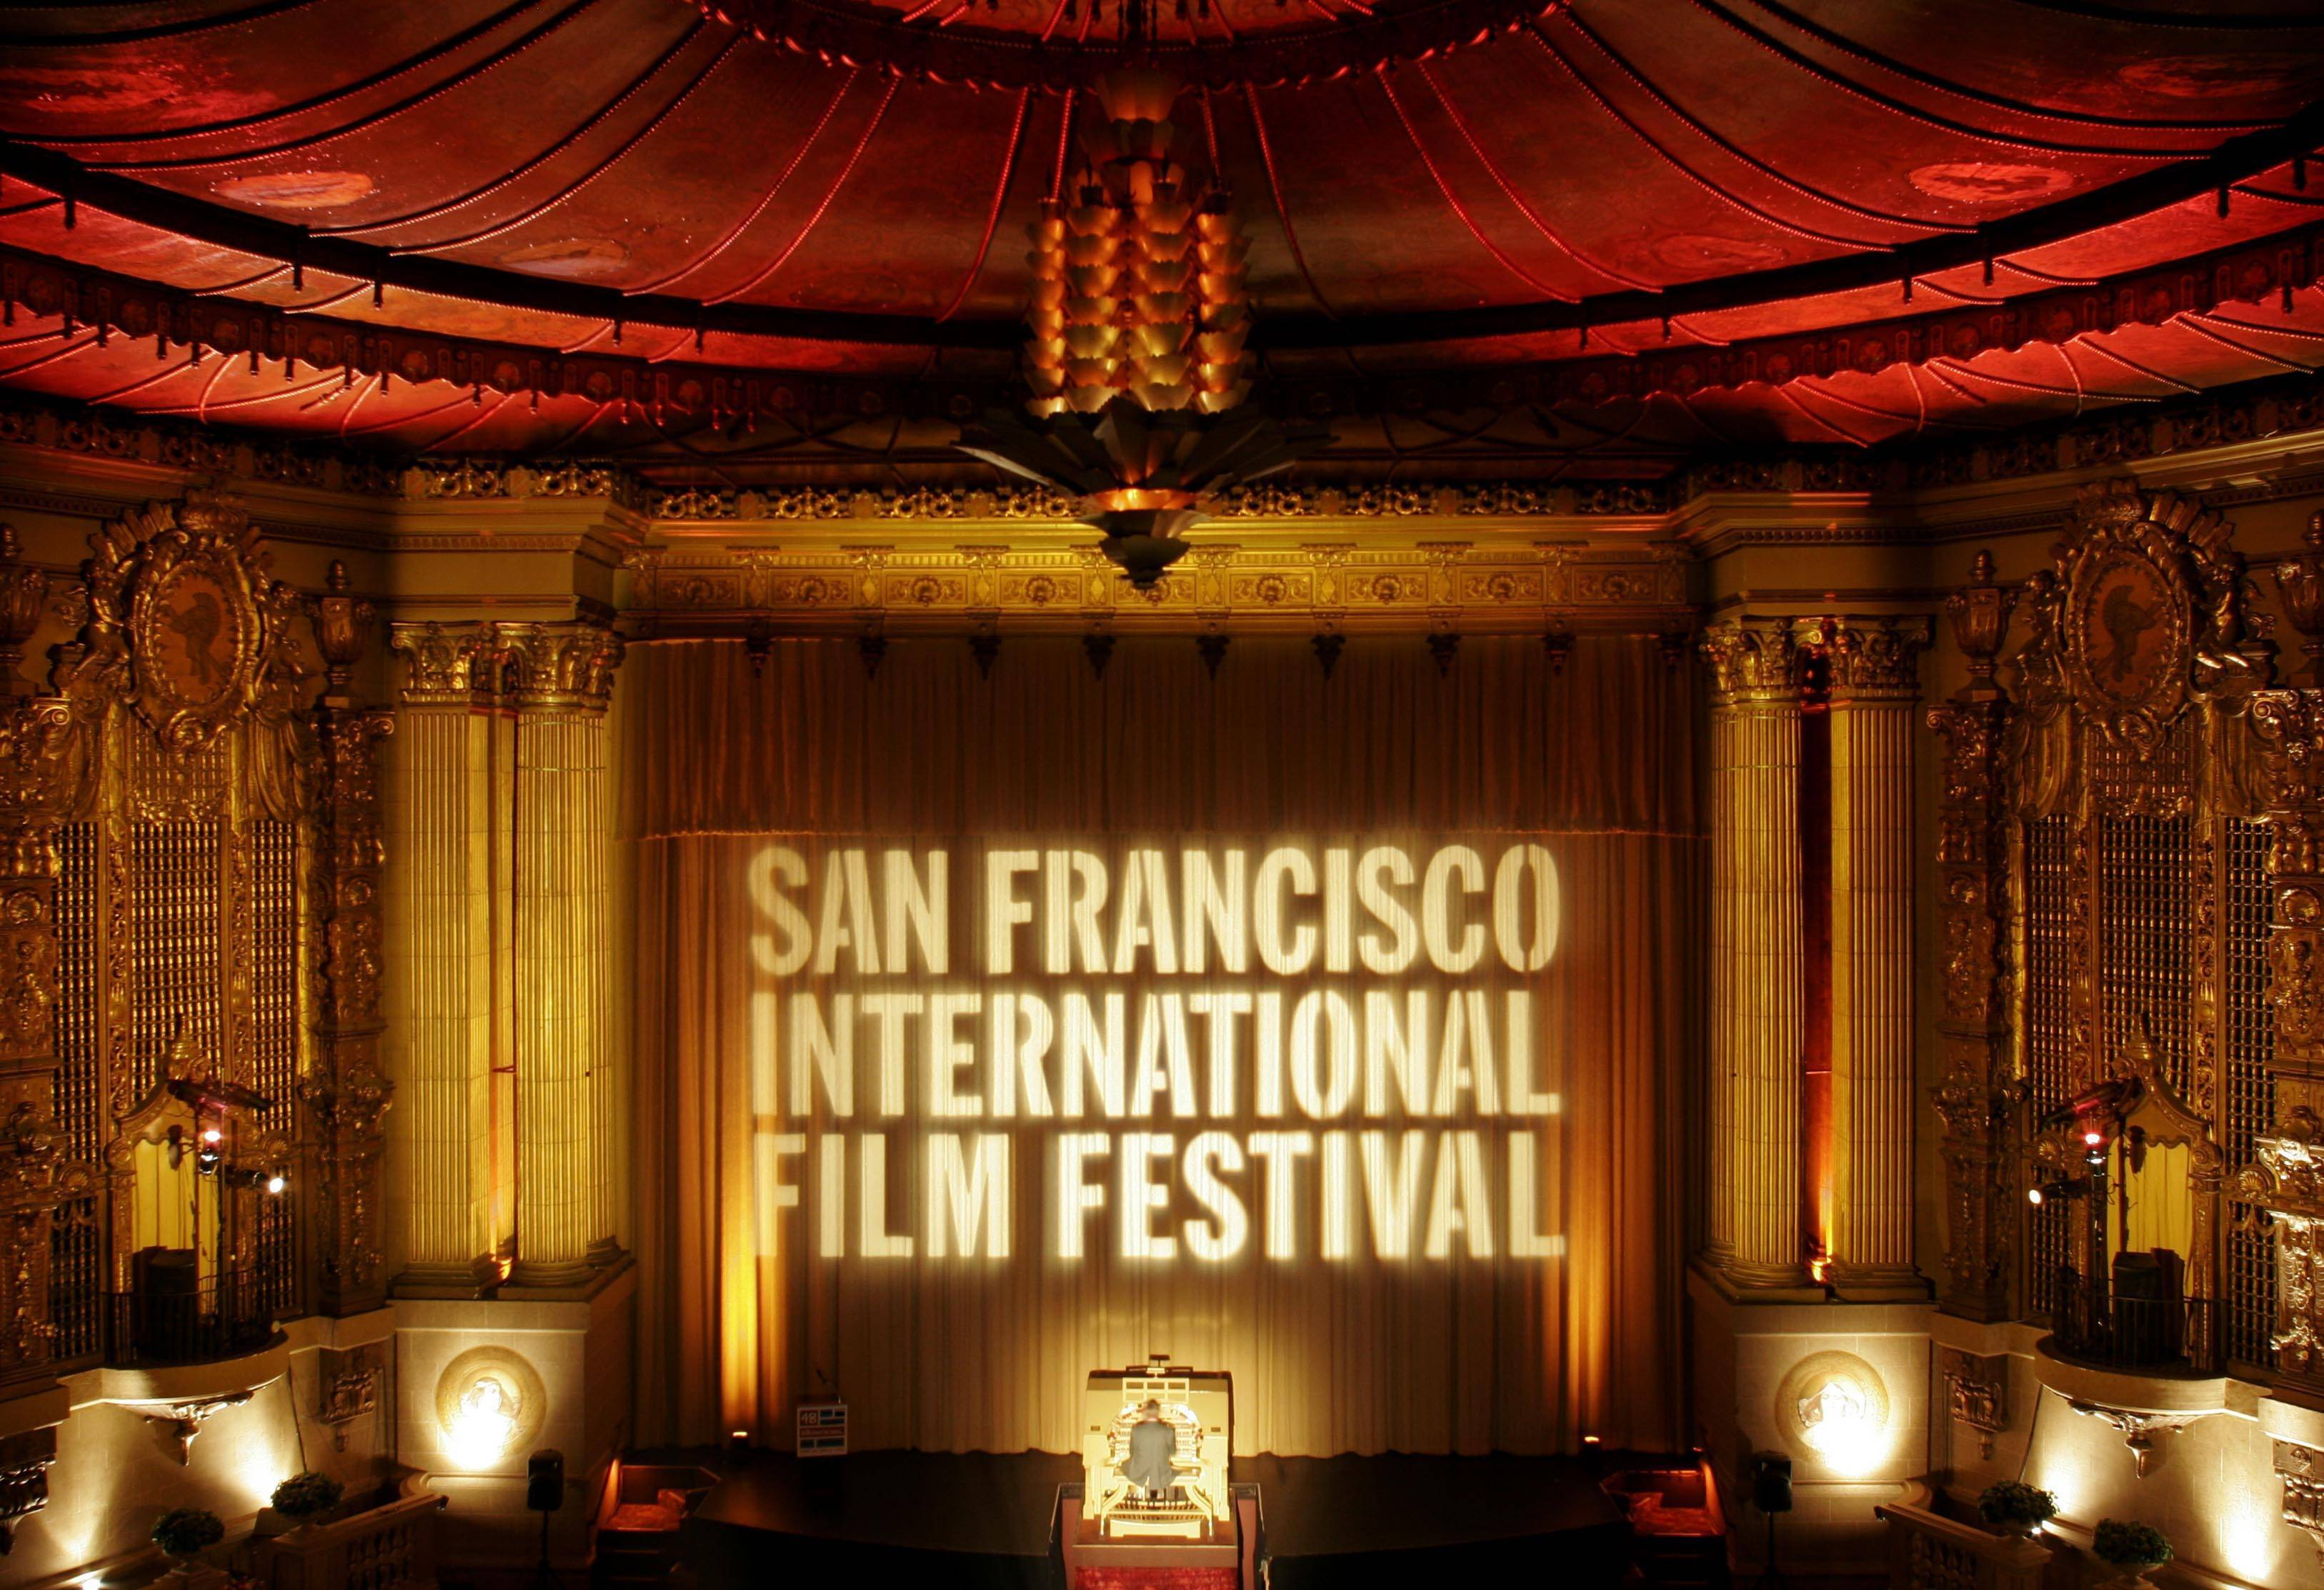 San Francisco International Film Festival Kicks Off 55th Season